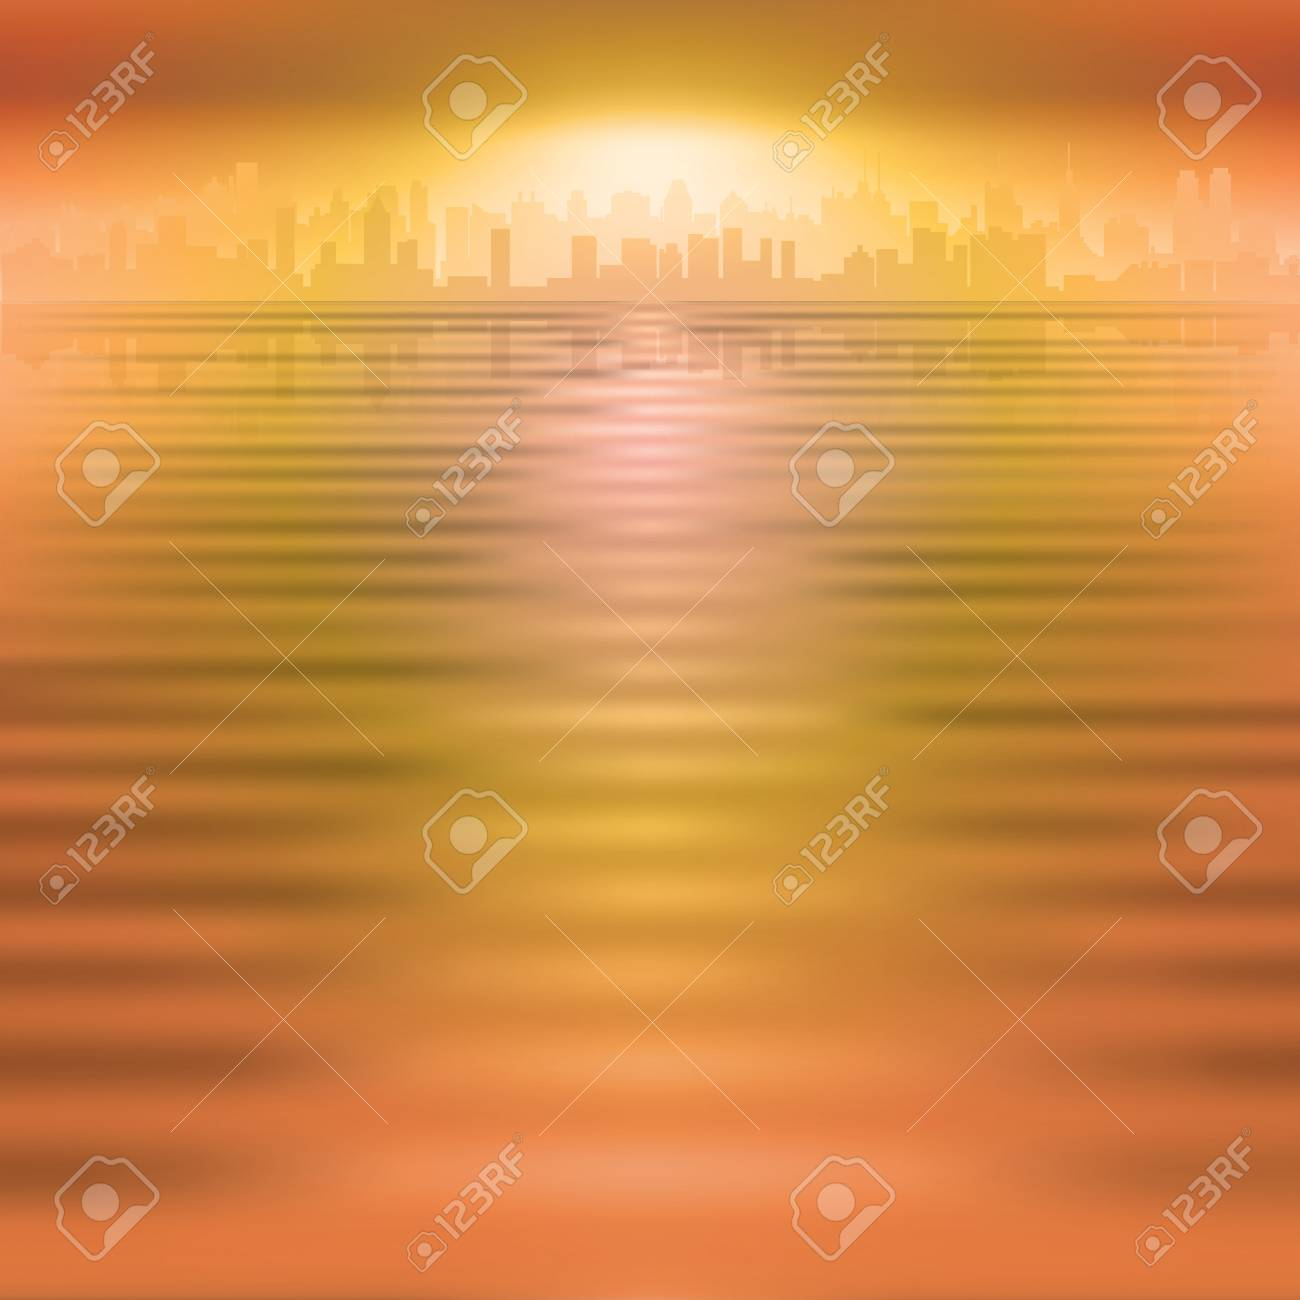 abstract orange background with silhouette of city Stock Vector - 14830854